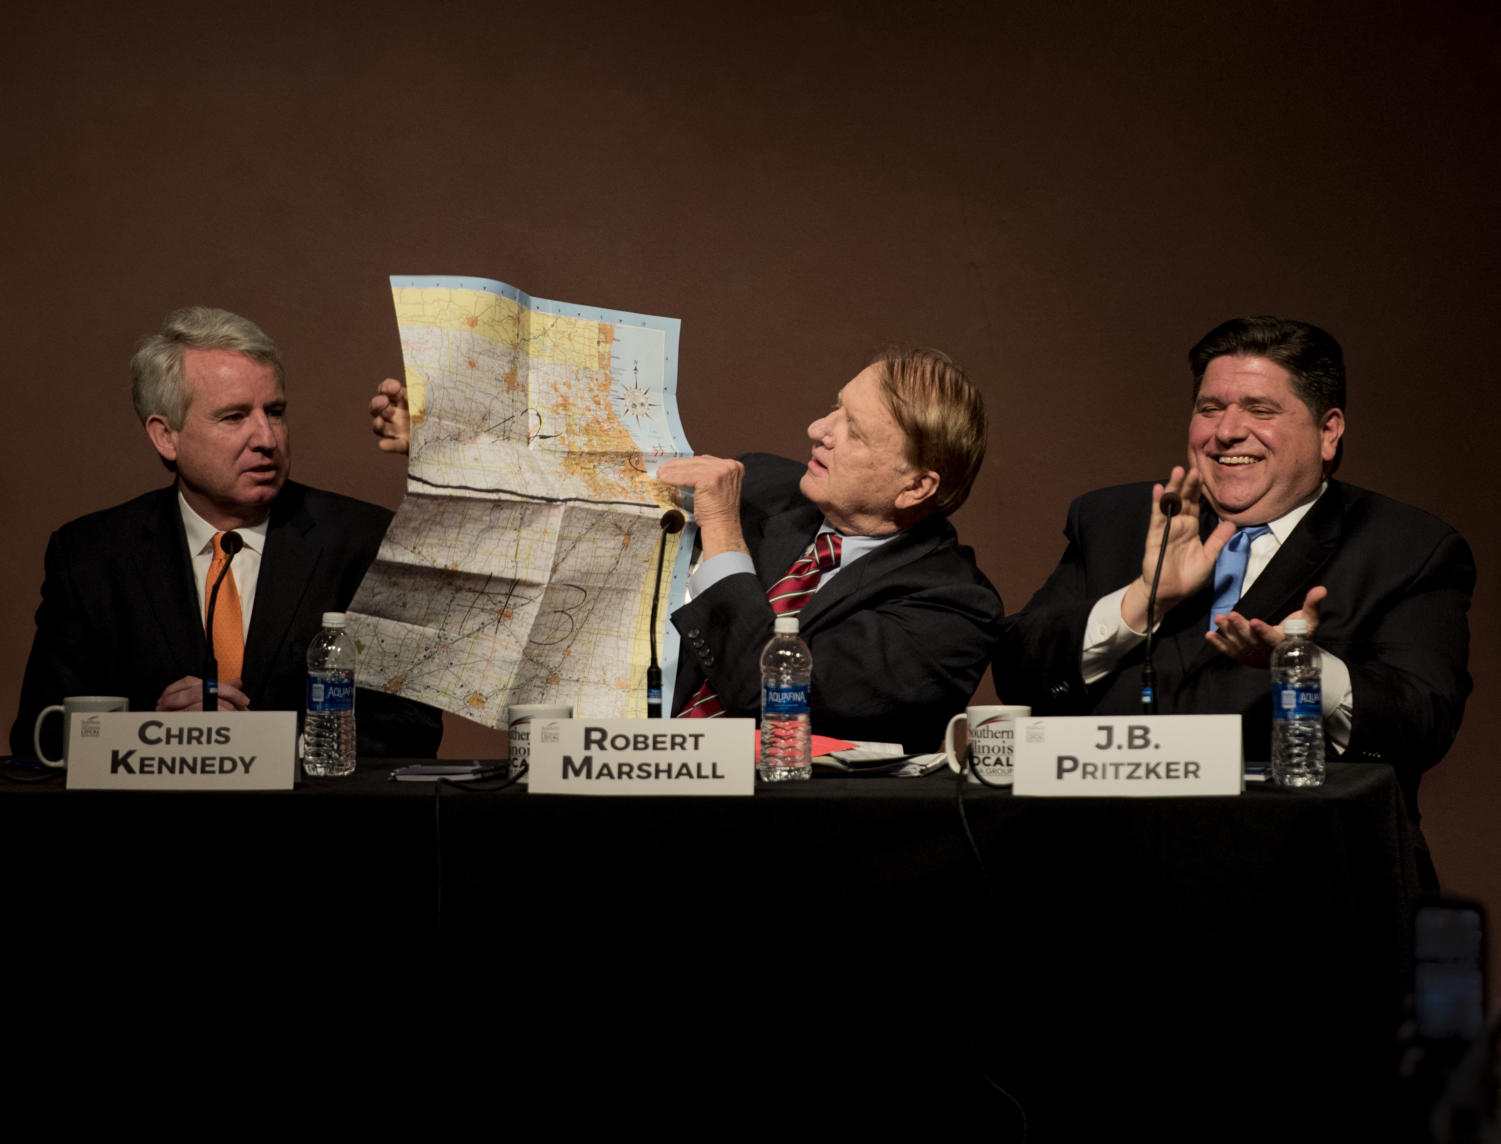 Robert Marshall, democratic candidate for the State of Illinois gubernatorial race, holds up a map Tuesday, Jan. 30, 2018, after interupting candidate Chris Kennedy at the Illinois Demoratic gubernatorial debate in the student center auditorium. 6 candidates from across Illinois are vying for the governor's seat. (Mary Newman | @MaryNewmanDE)